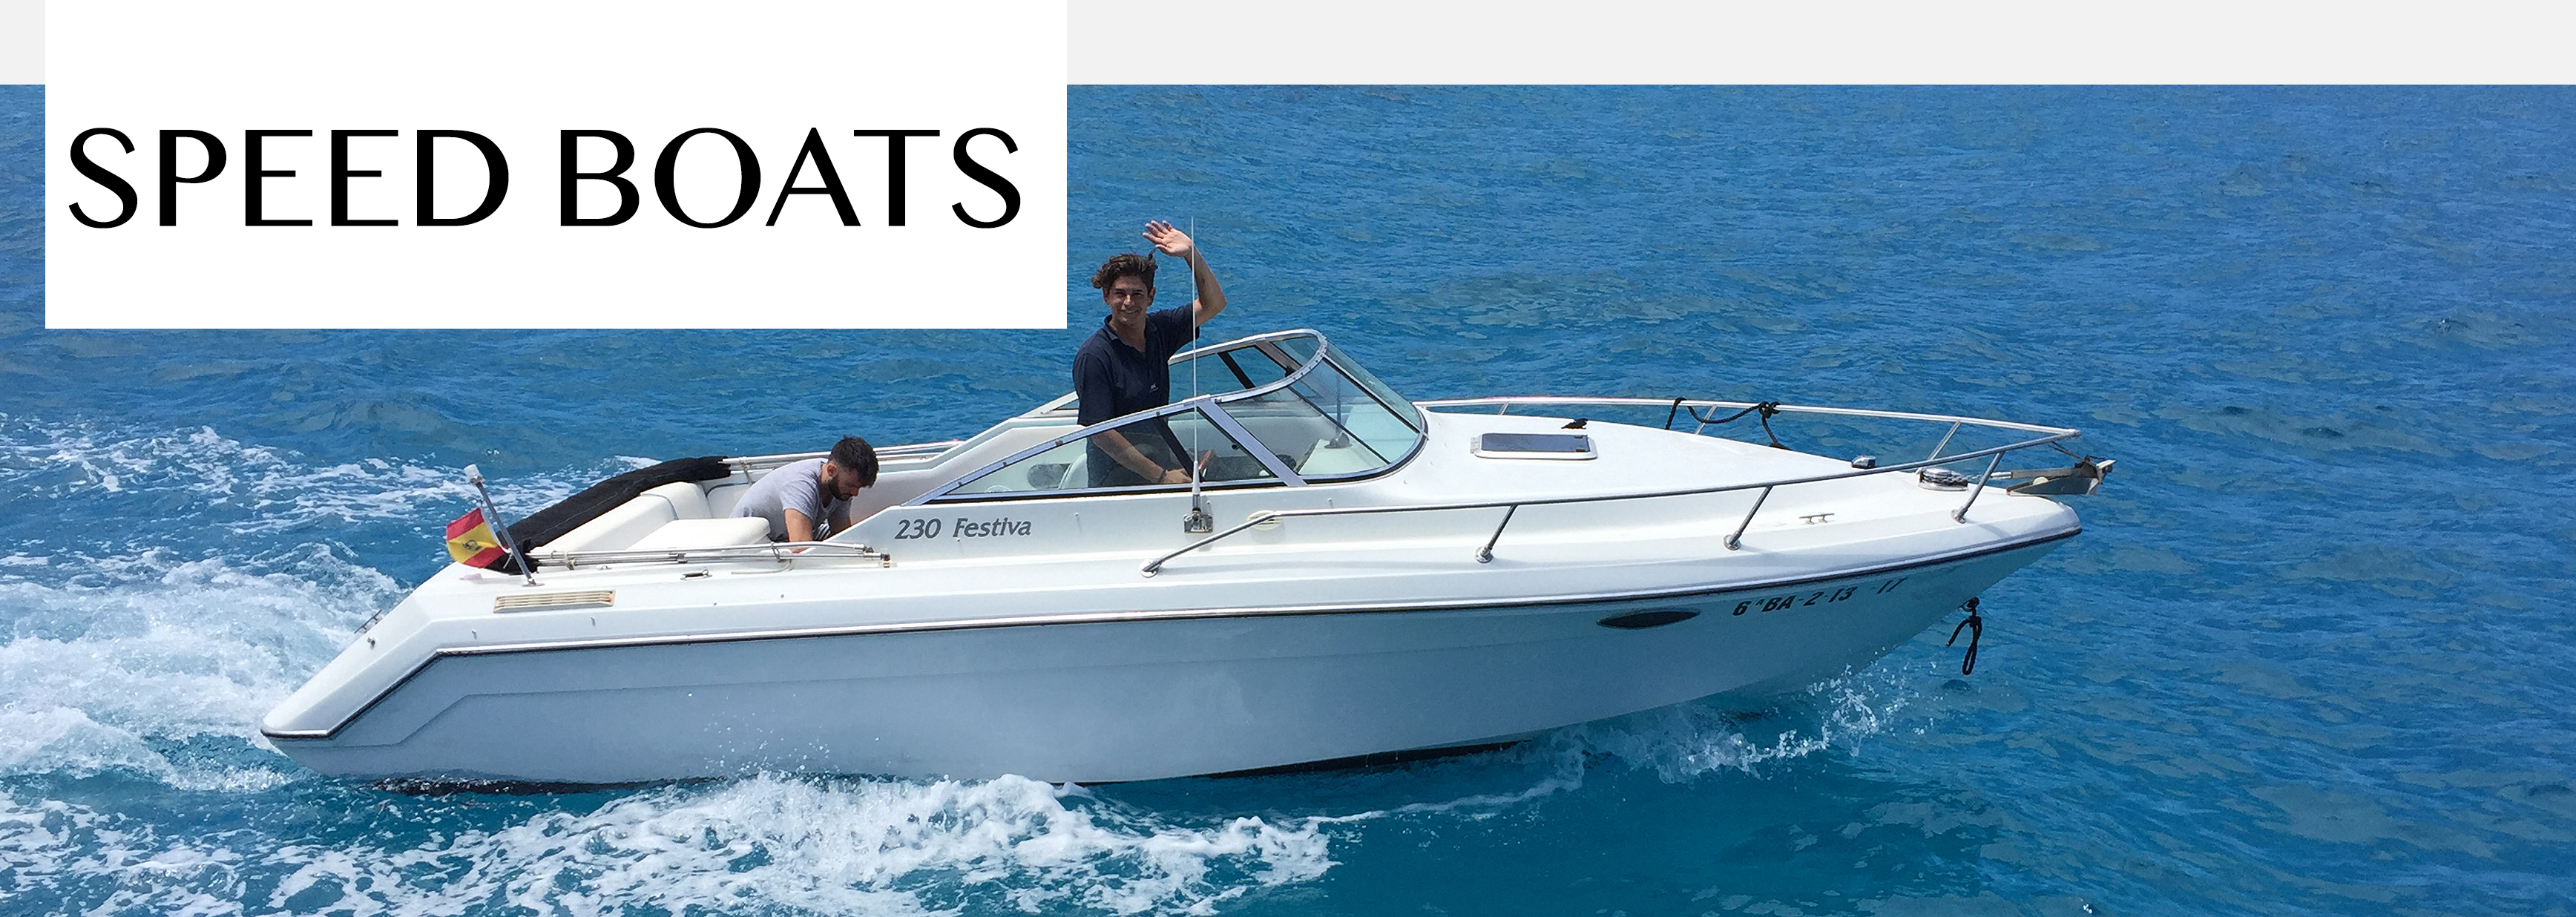 SPEED BOATS RENT